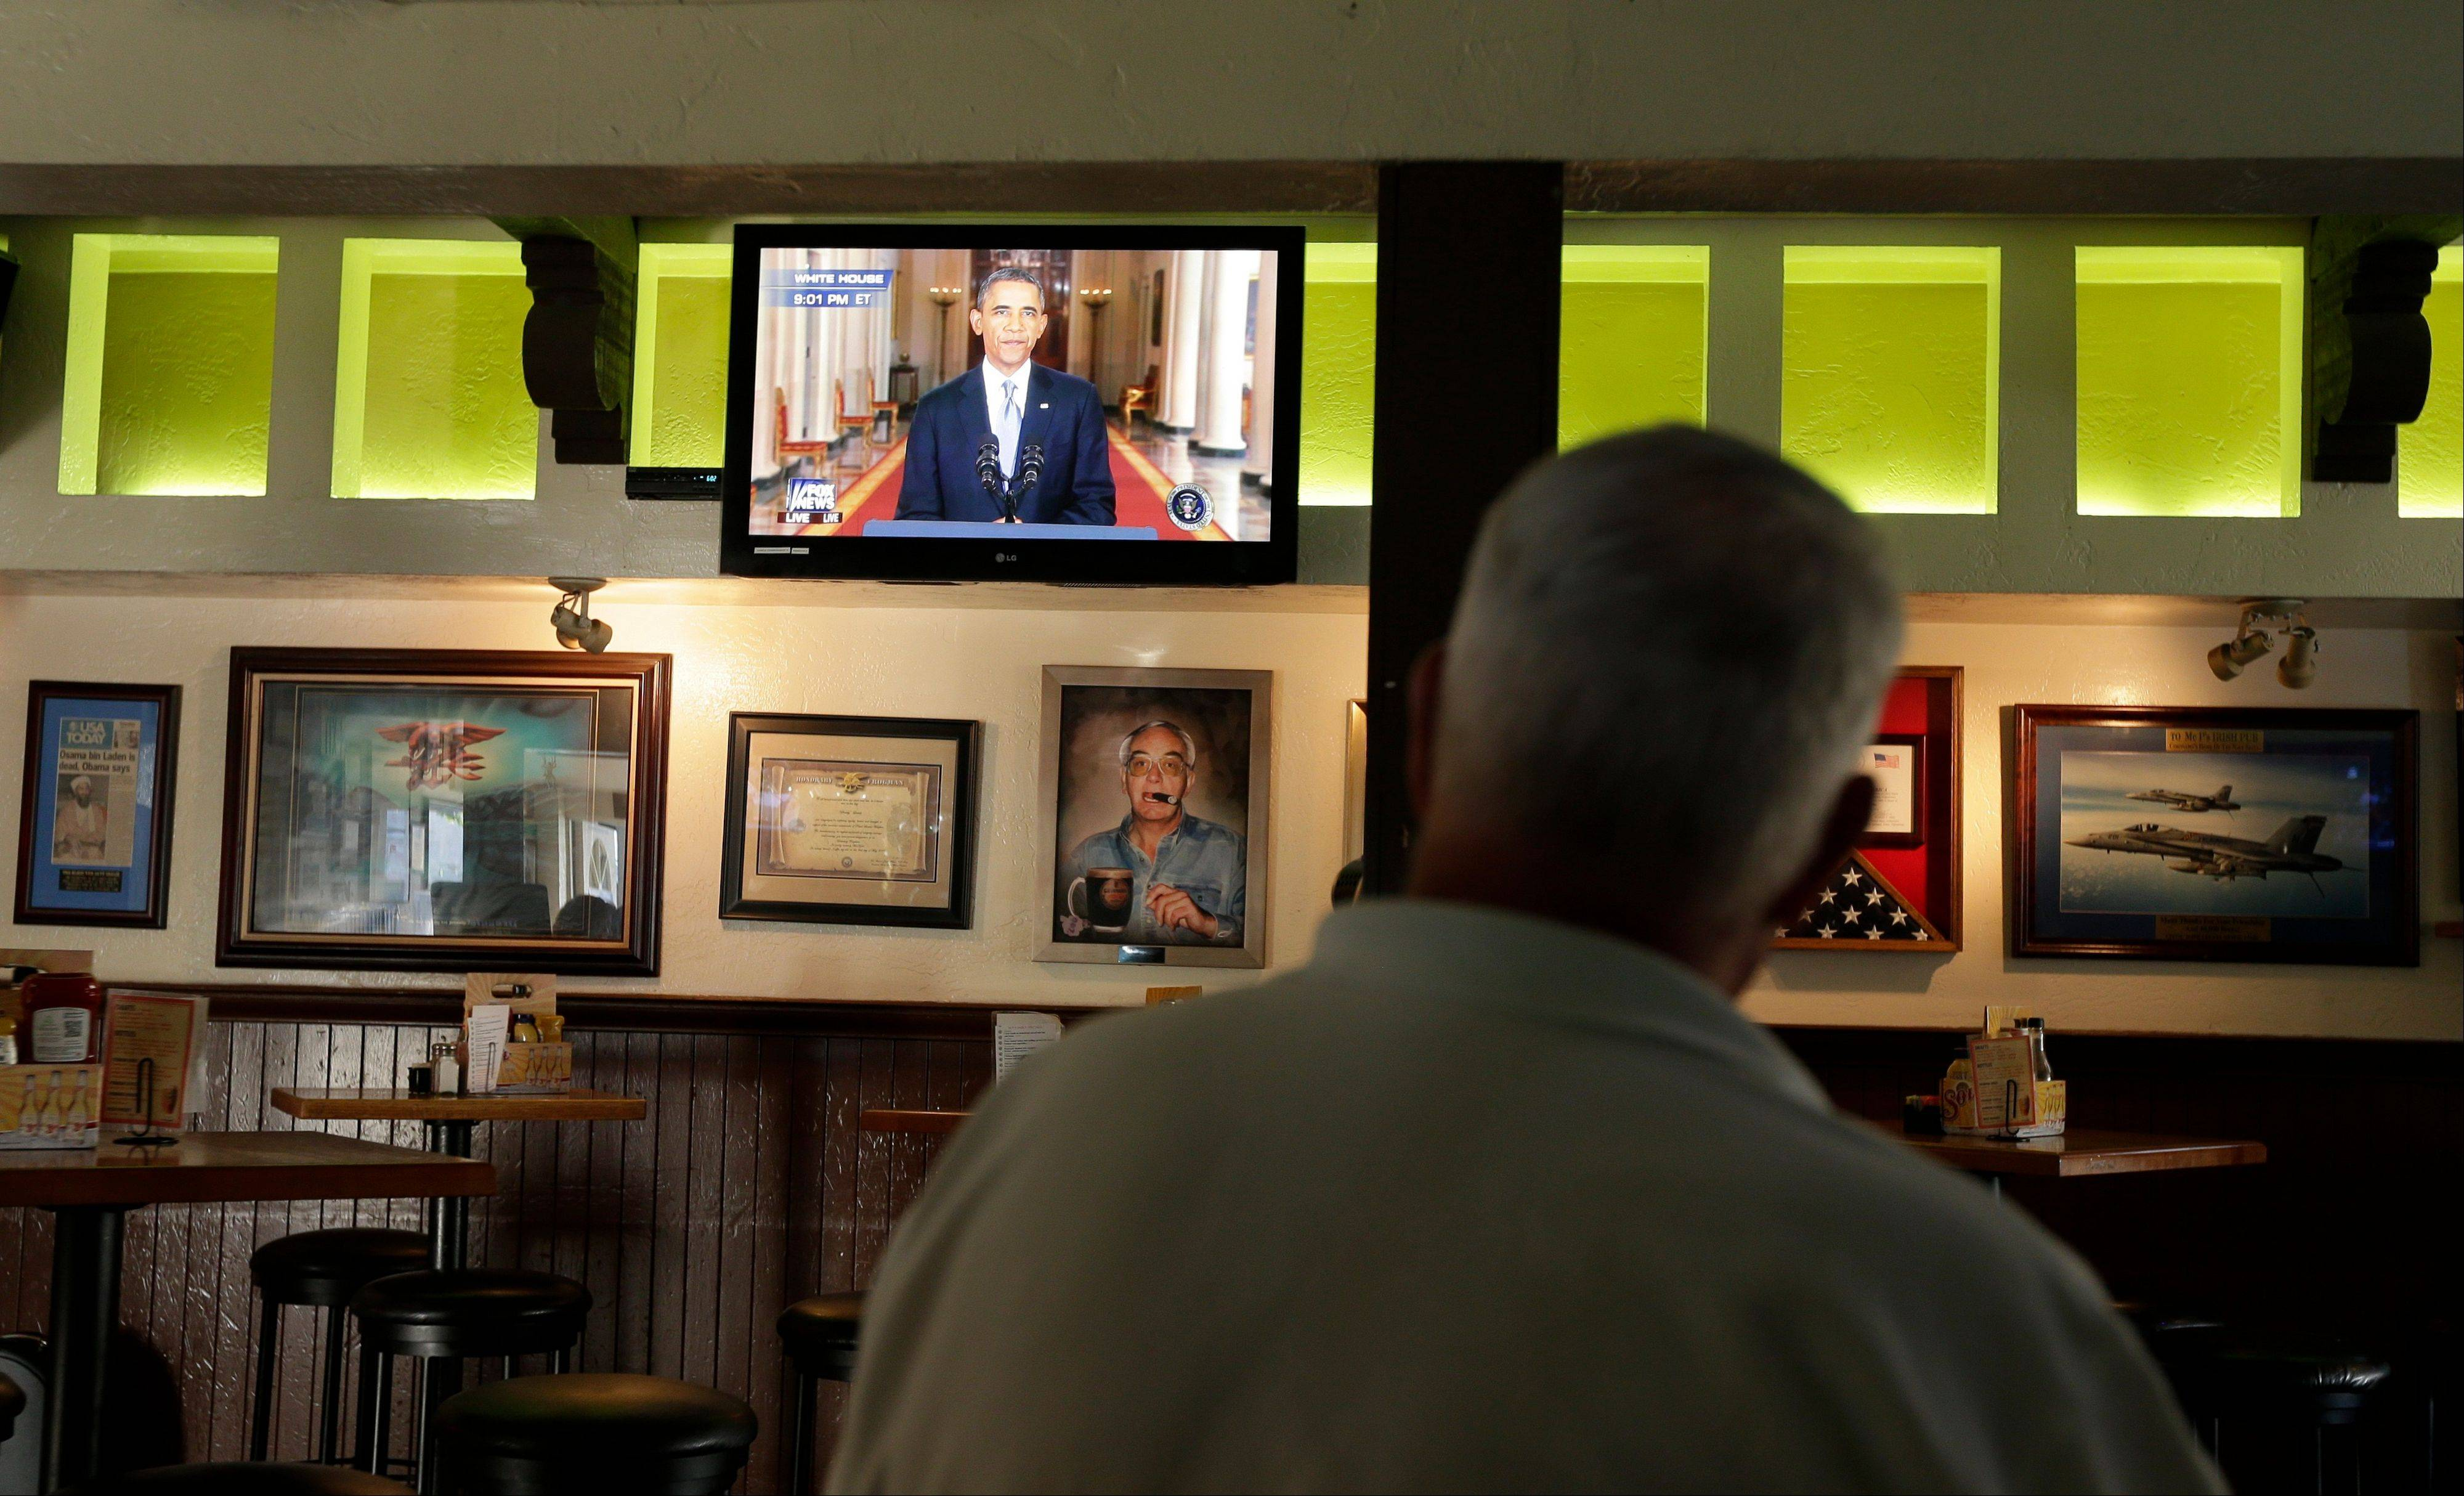 John Merry watches President Barack Obama deliver a speech about relations with Syria from McP's Pub, Tuesday, Sept. 10, 2013, in Coronado, Calif.